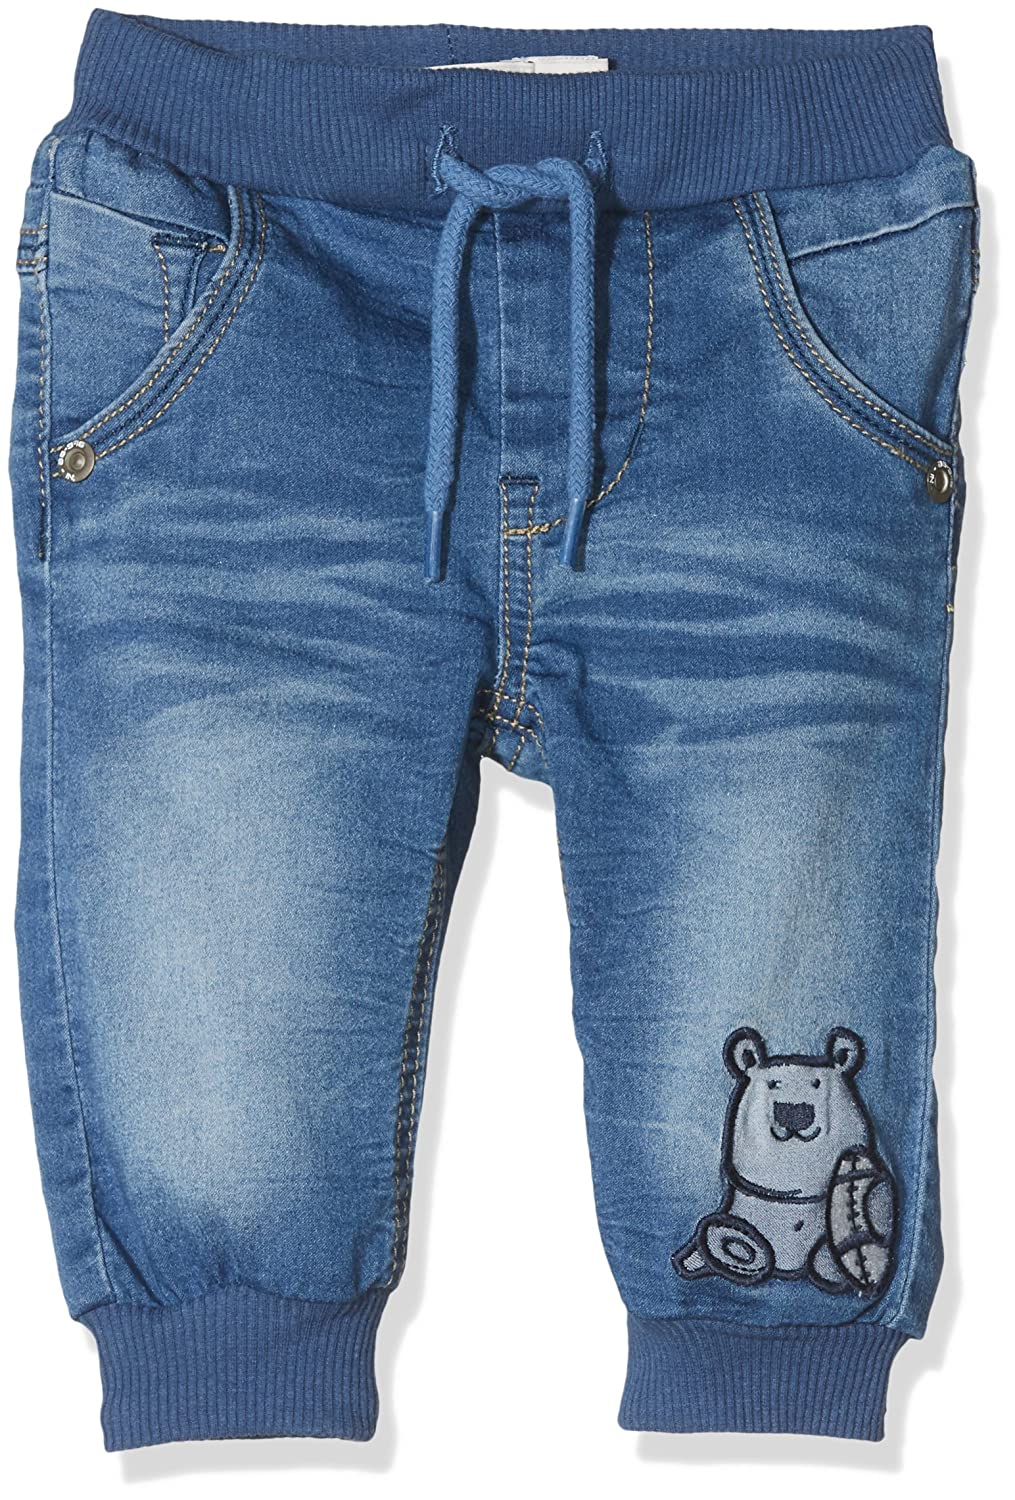 NAME IT Baby-Jungen Jeans 13148117